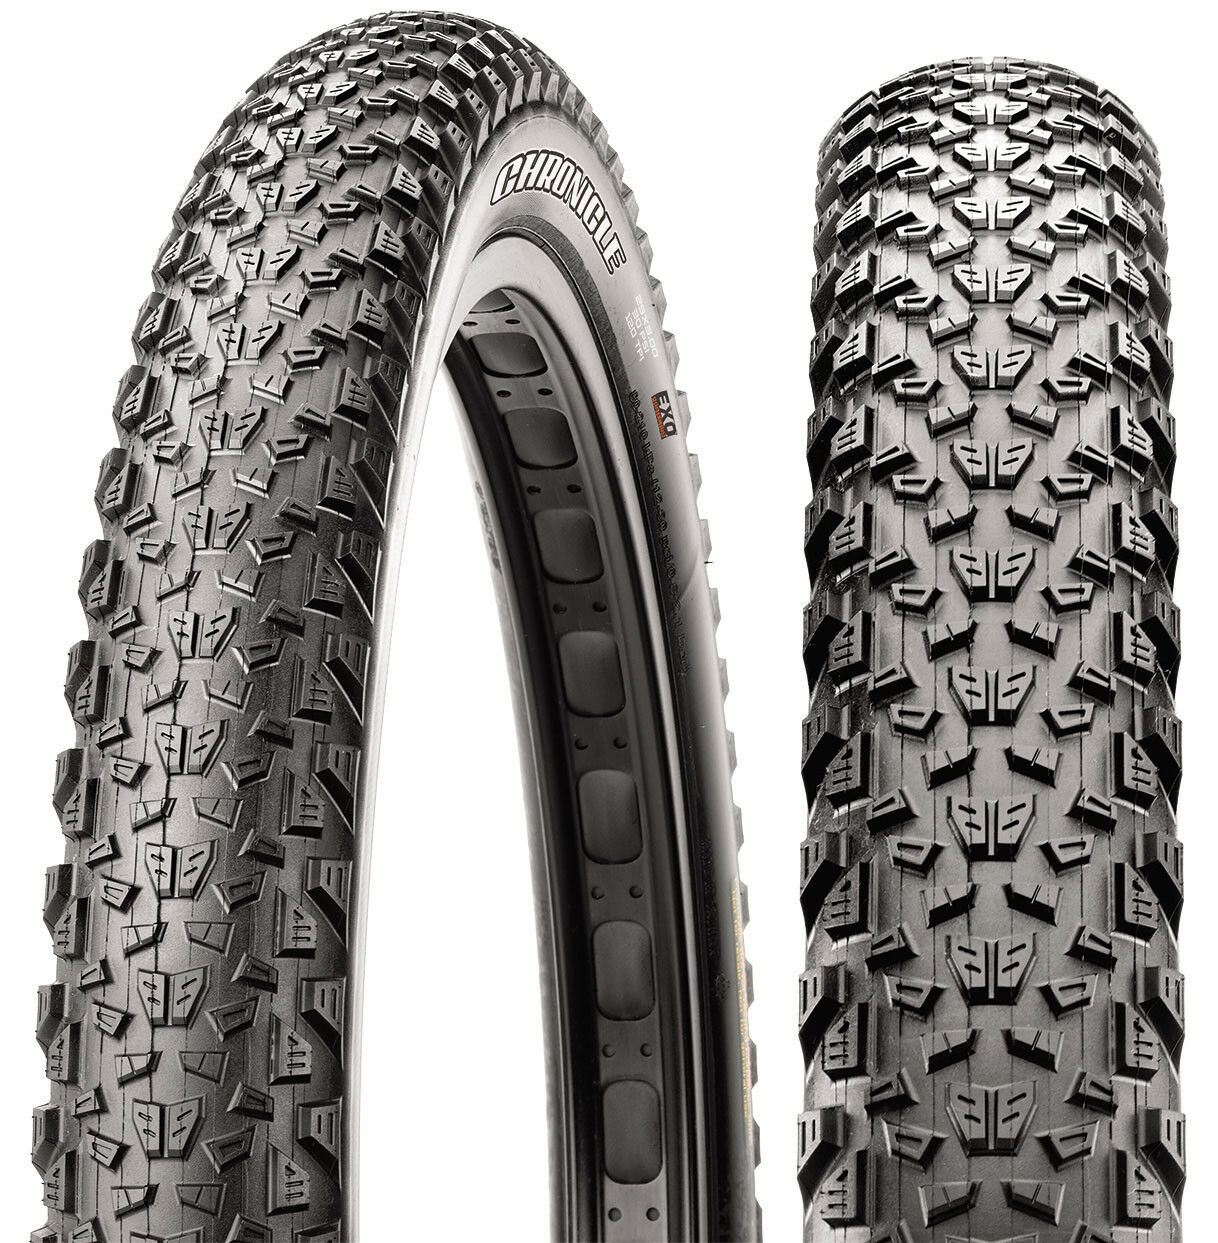 MAXXIS Chronicle 27.5x3.00 120TPI Foldable Dual   910g